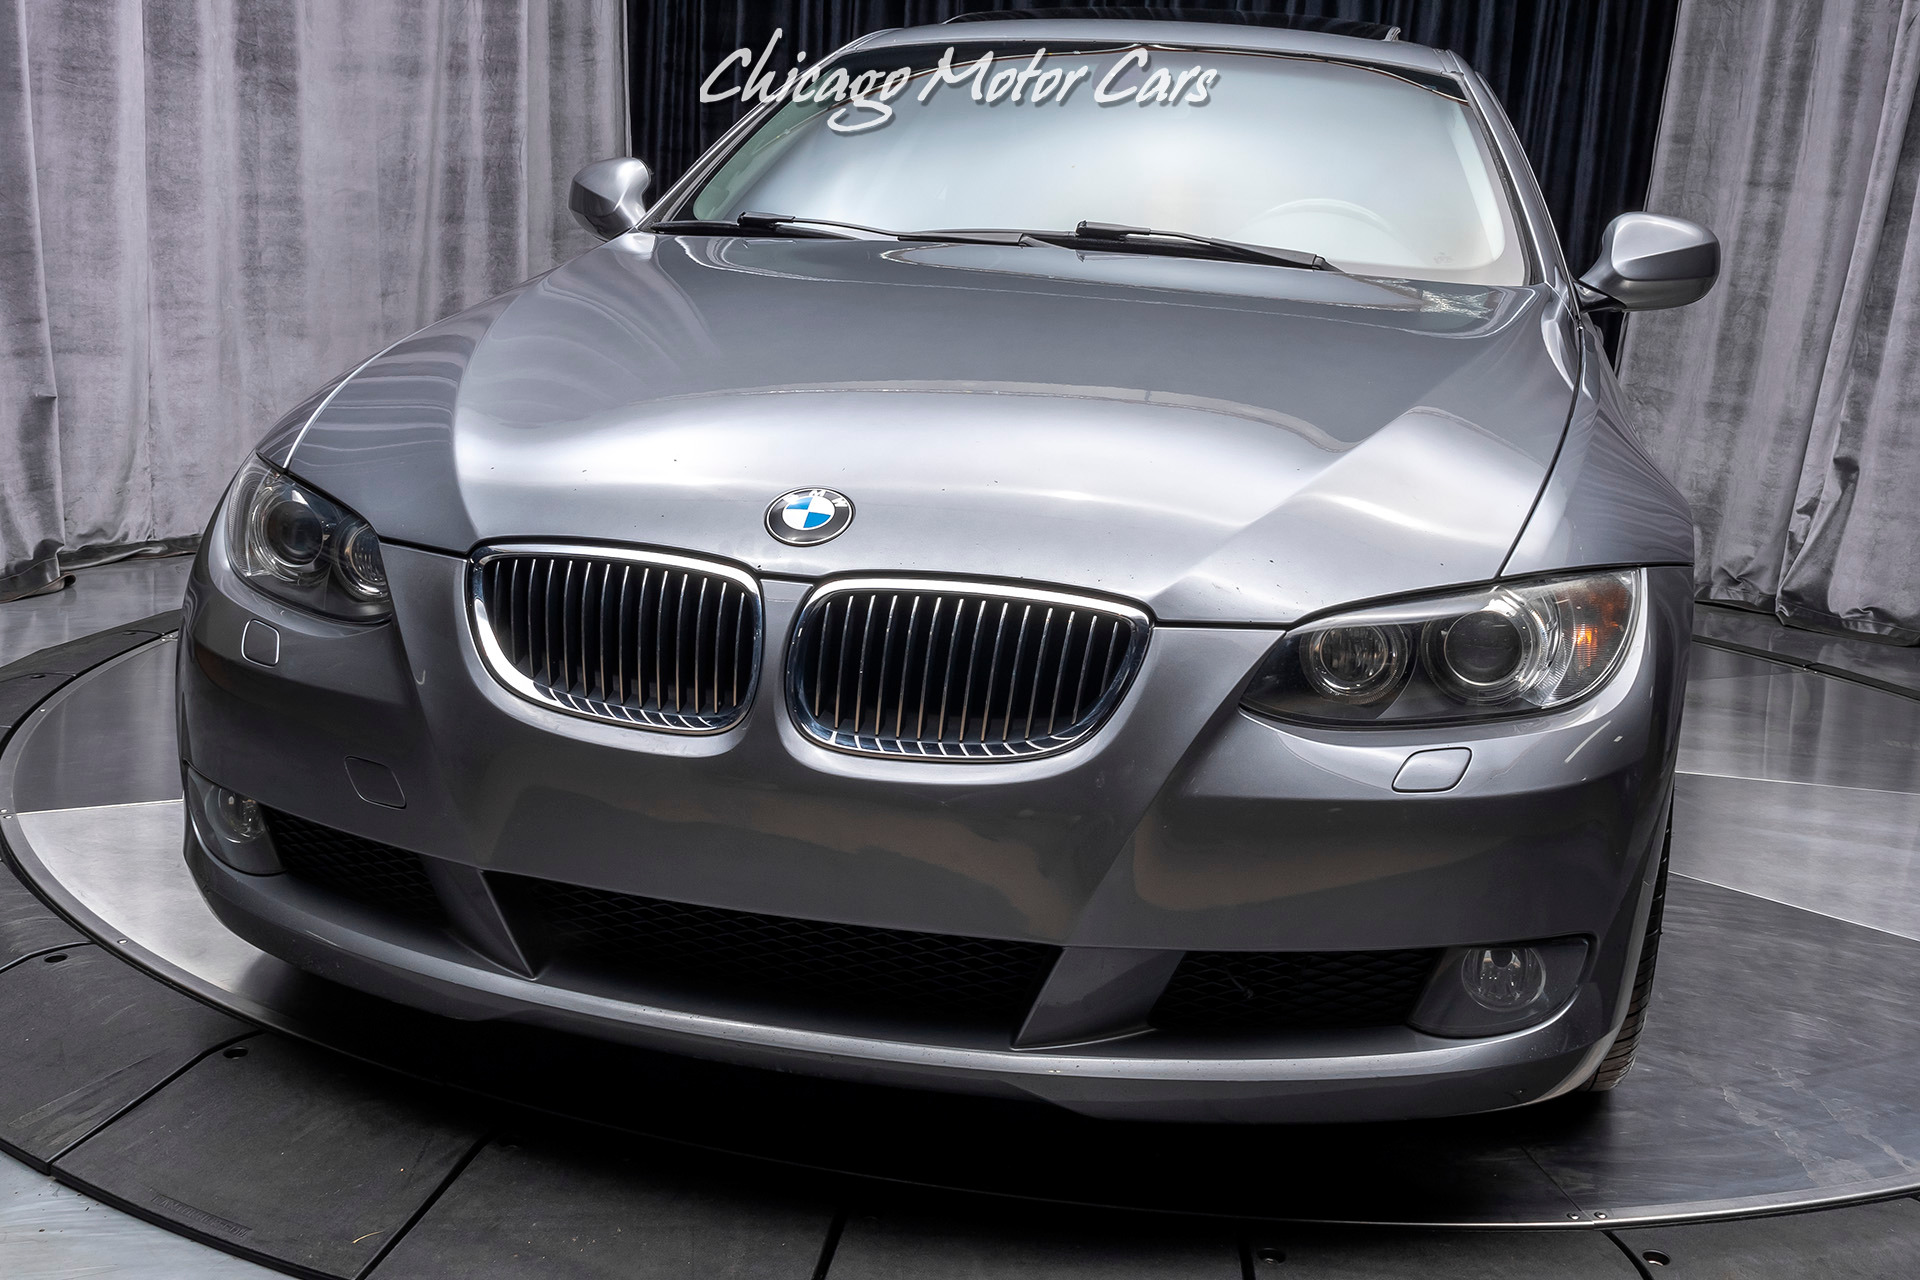 Used-2010-BMW-328i-Coupe-SPORT-PACKAGE-Power-Moonroof-18-Alloy-Wheels